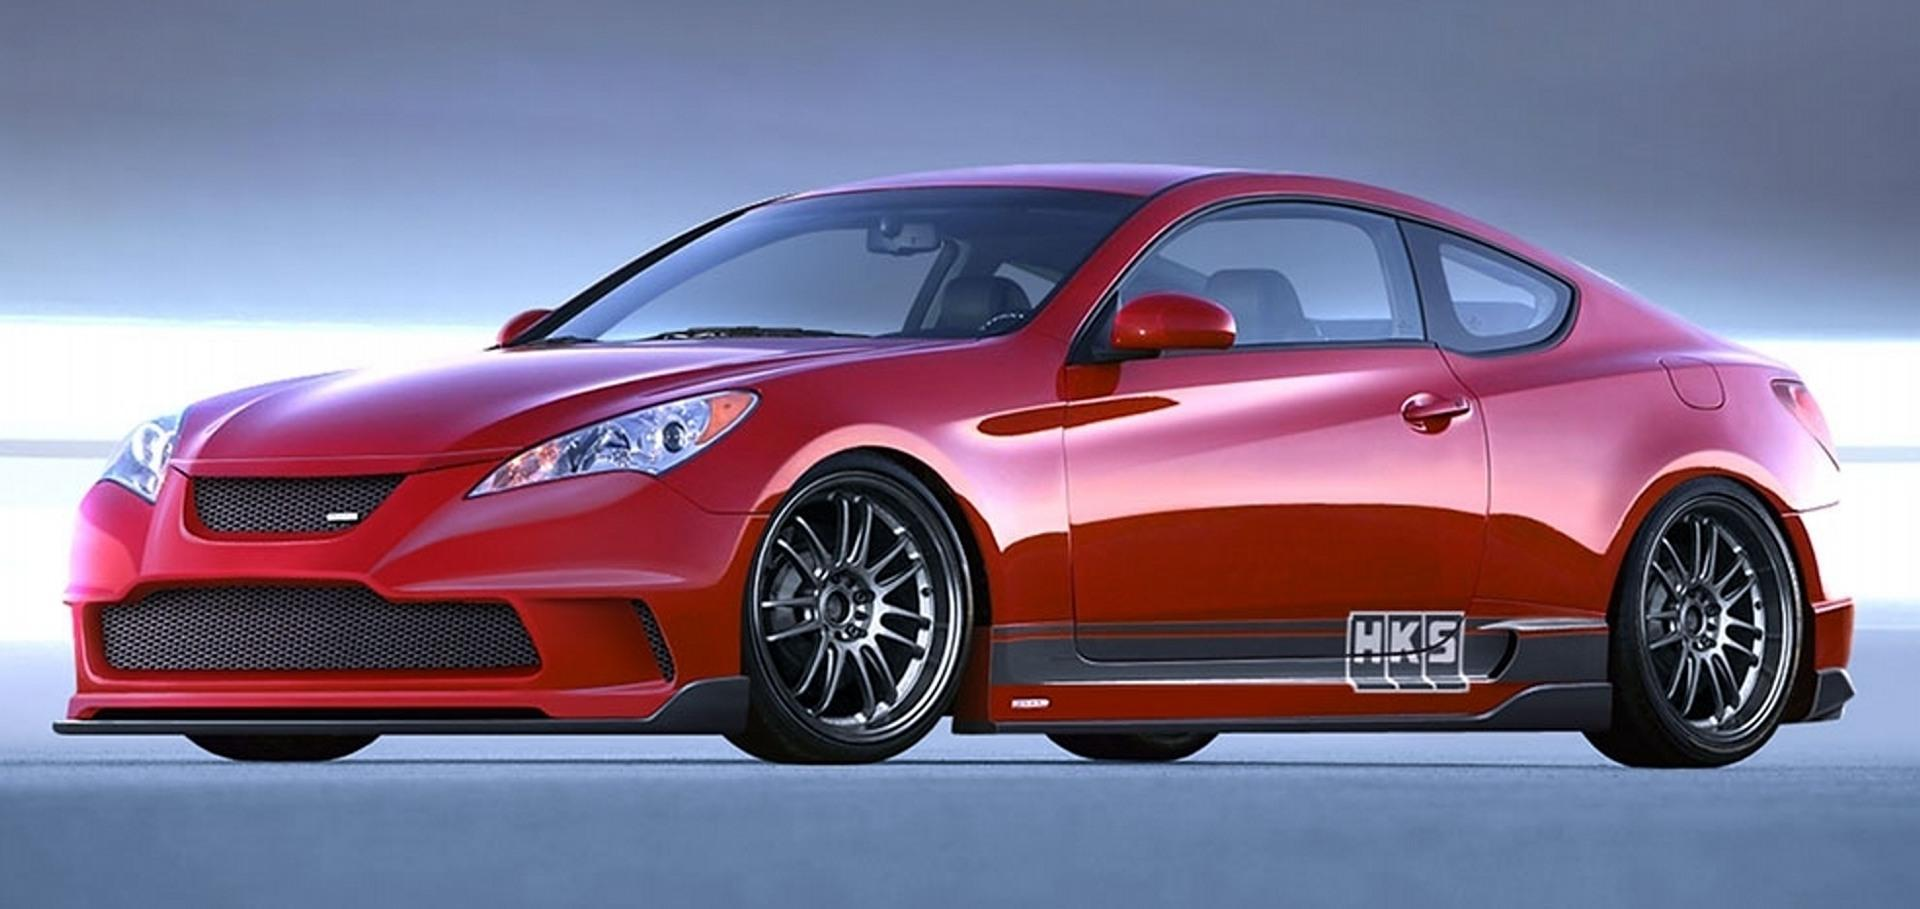 2009 Hyundai Hks Genesis News And Information